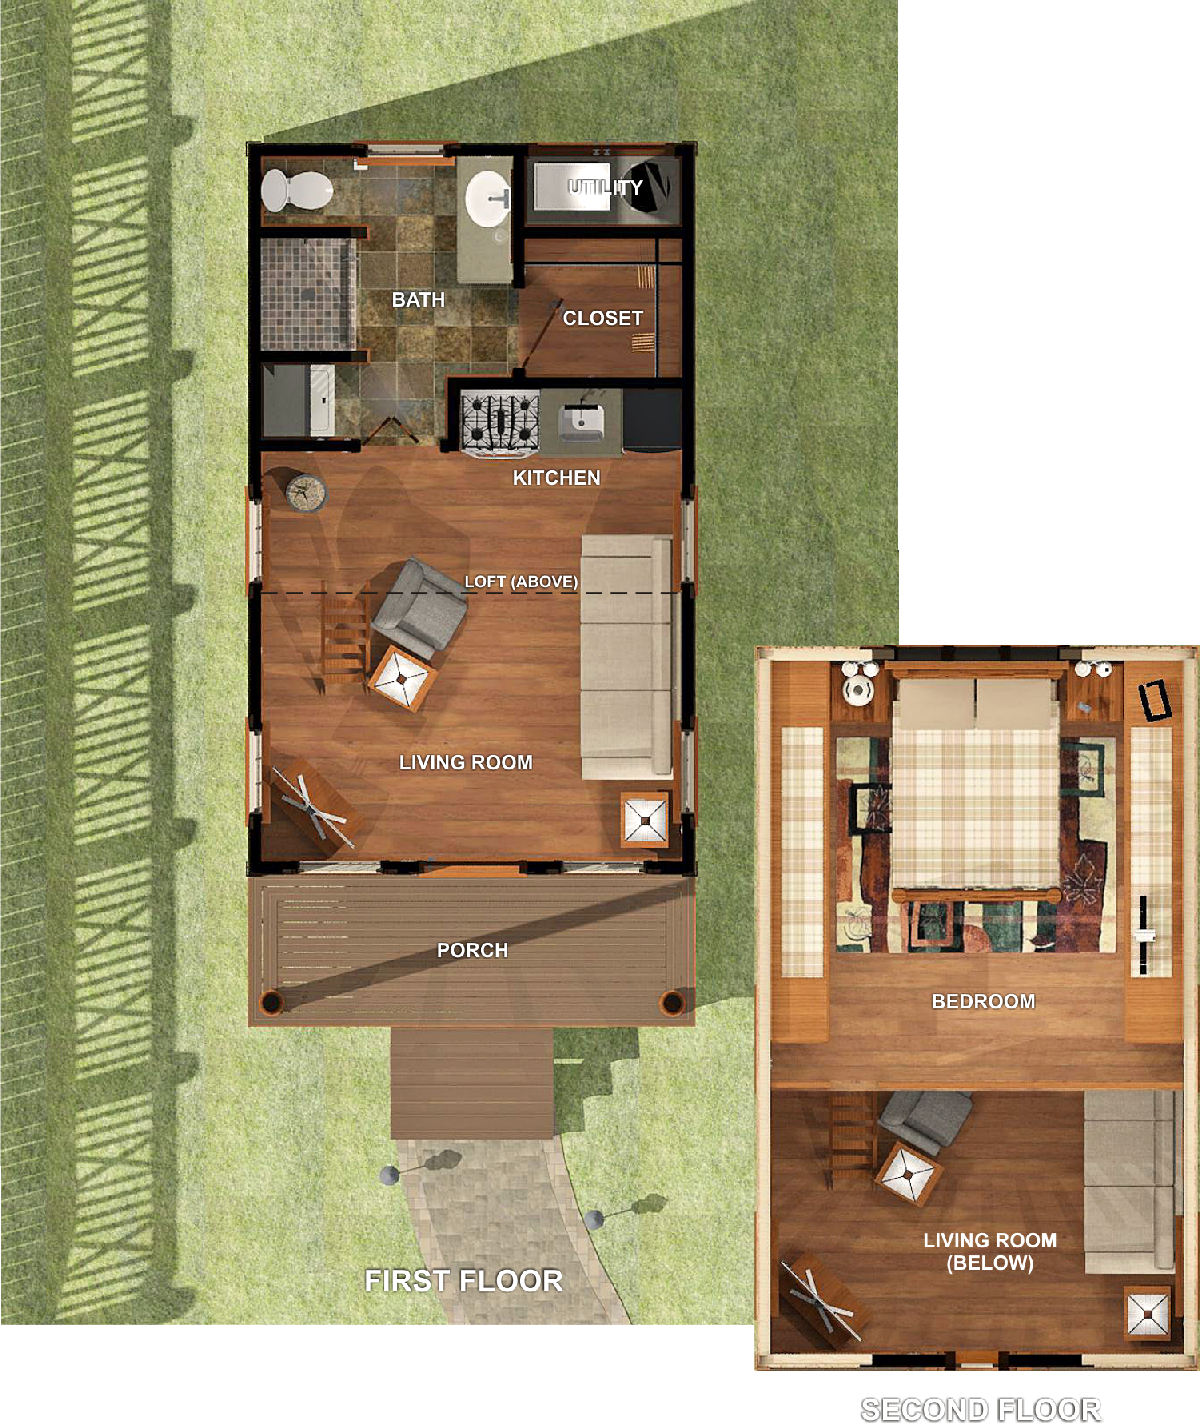 tiny homes small homes little house texas tiny house plans small home